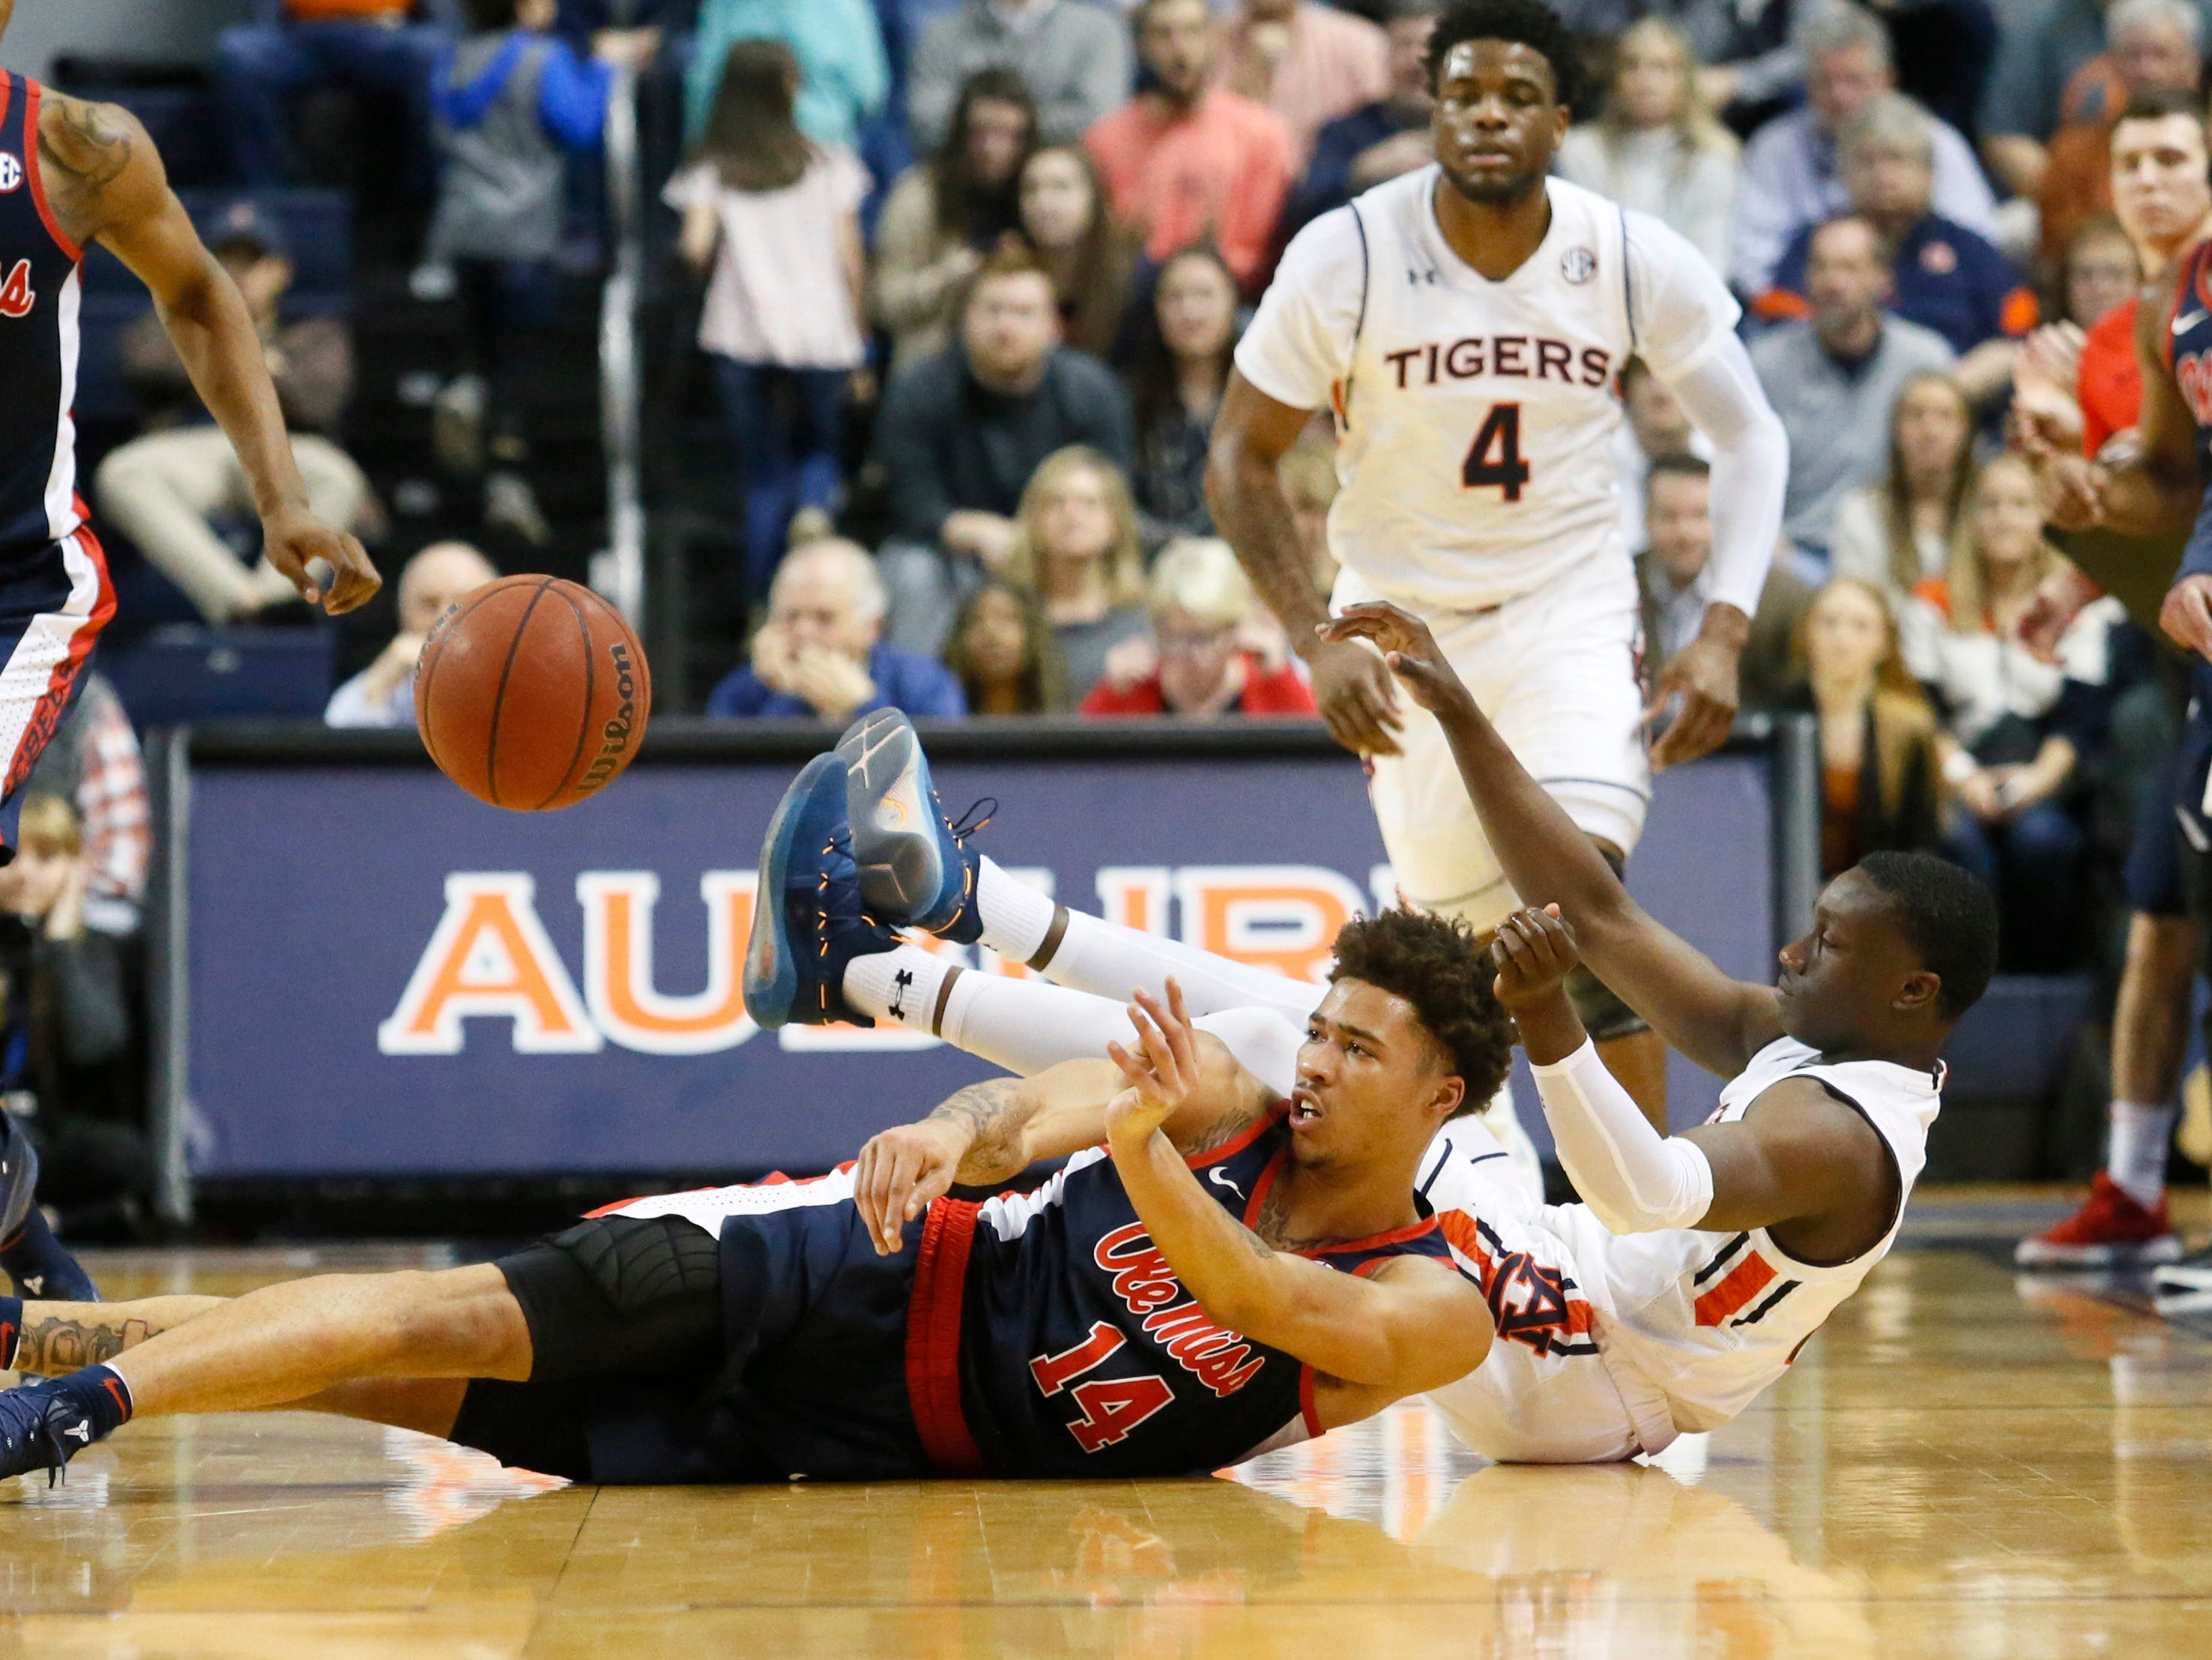 Feb 13, 2019; Auburn, AL, USA; Ole Miss Rebels forward KJ Buffen (14) makes a pass after taking the ball from Auburn Tigers guard Jared Harper (1) during the first half at Auburn Arena. Mandatory Credit: John Reed-USA TODAY Sports